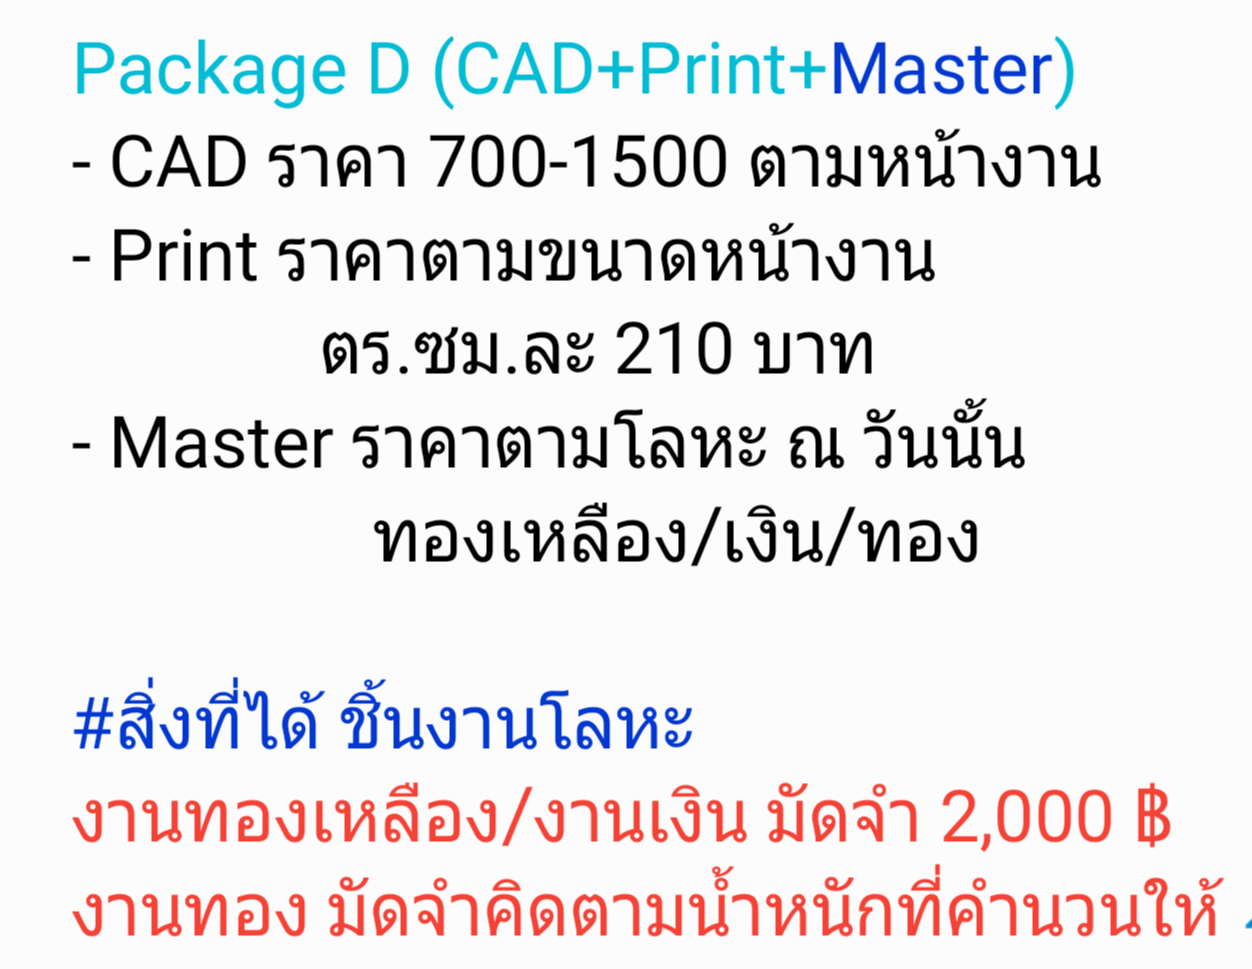 Package D (CAD+Print+Master/Sample)